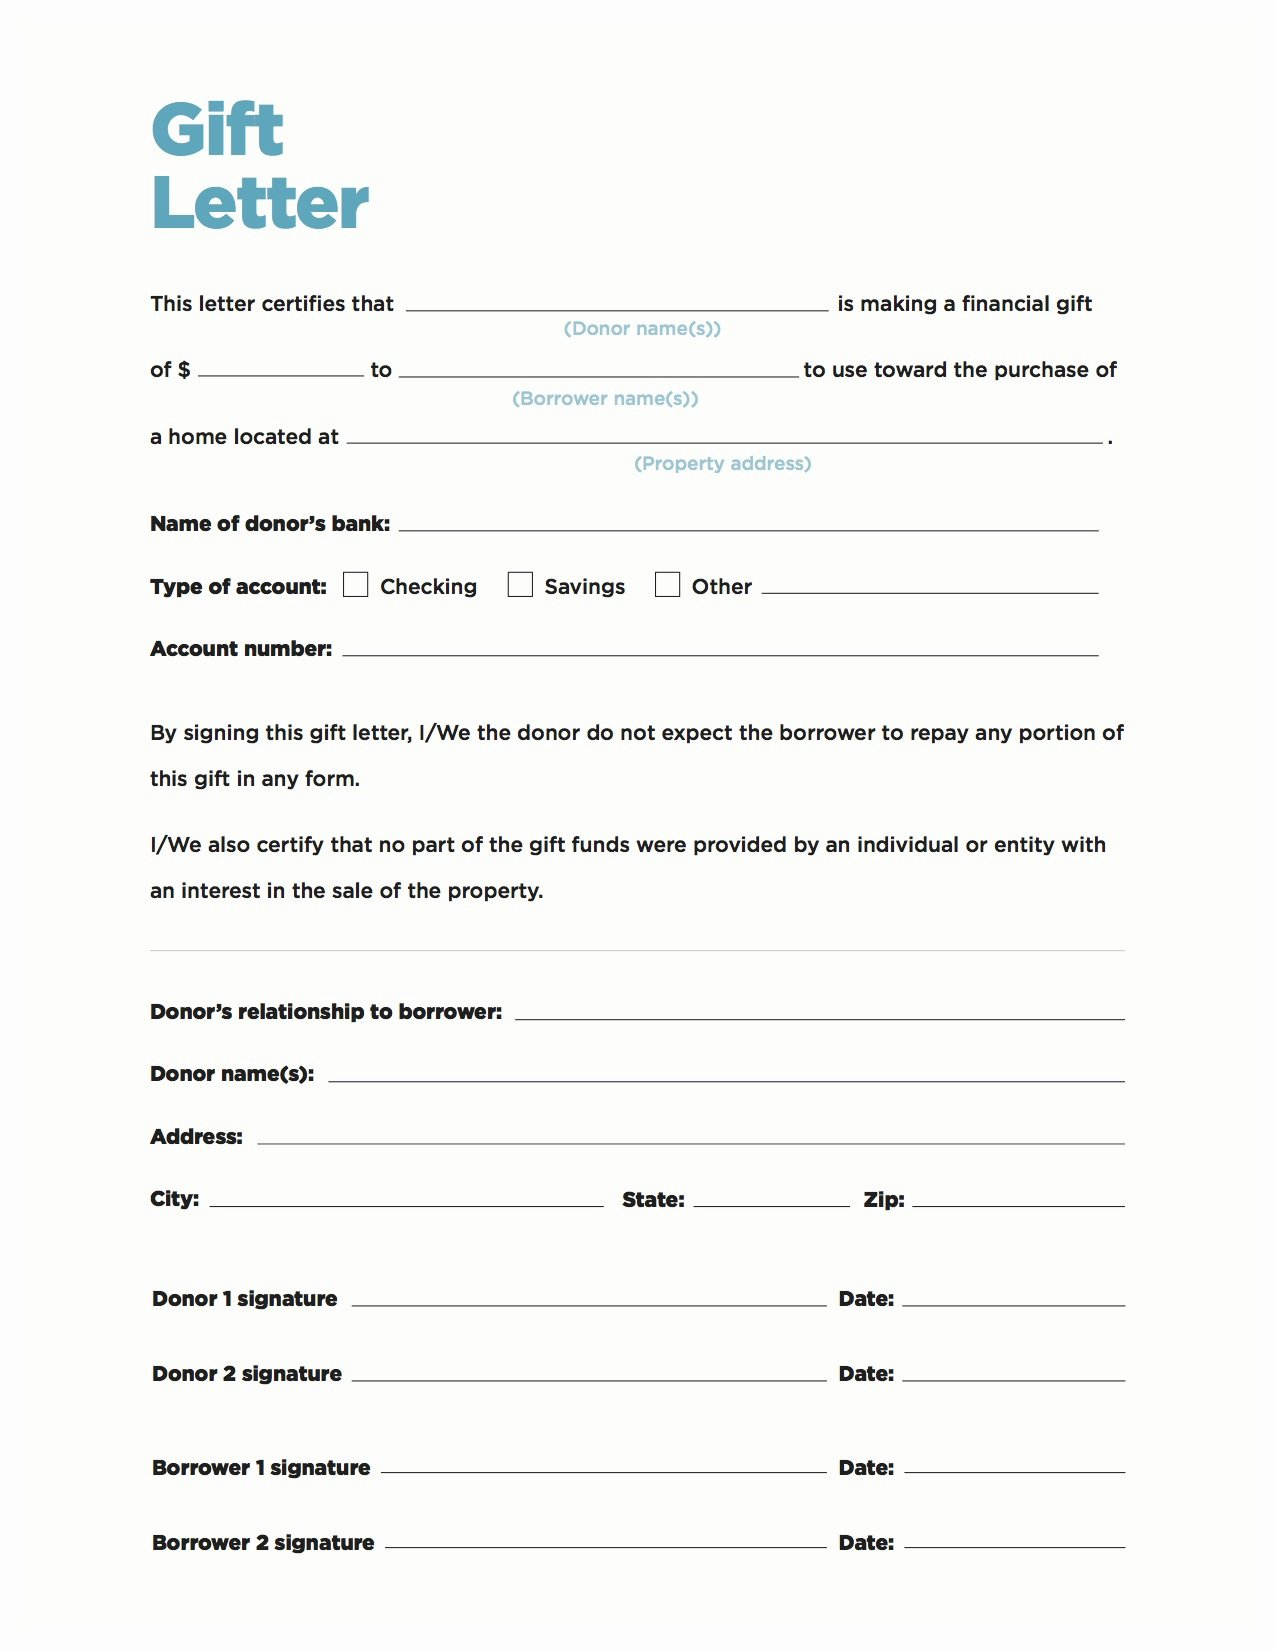 Gift Money Letter Template Elegant Gift Money Can Meet Your Down Payment Needs Nerdwallet